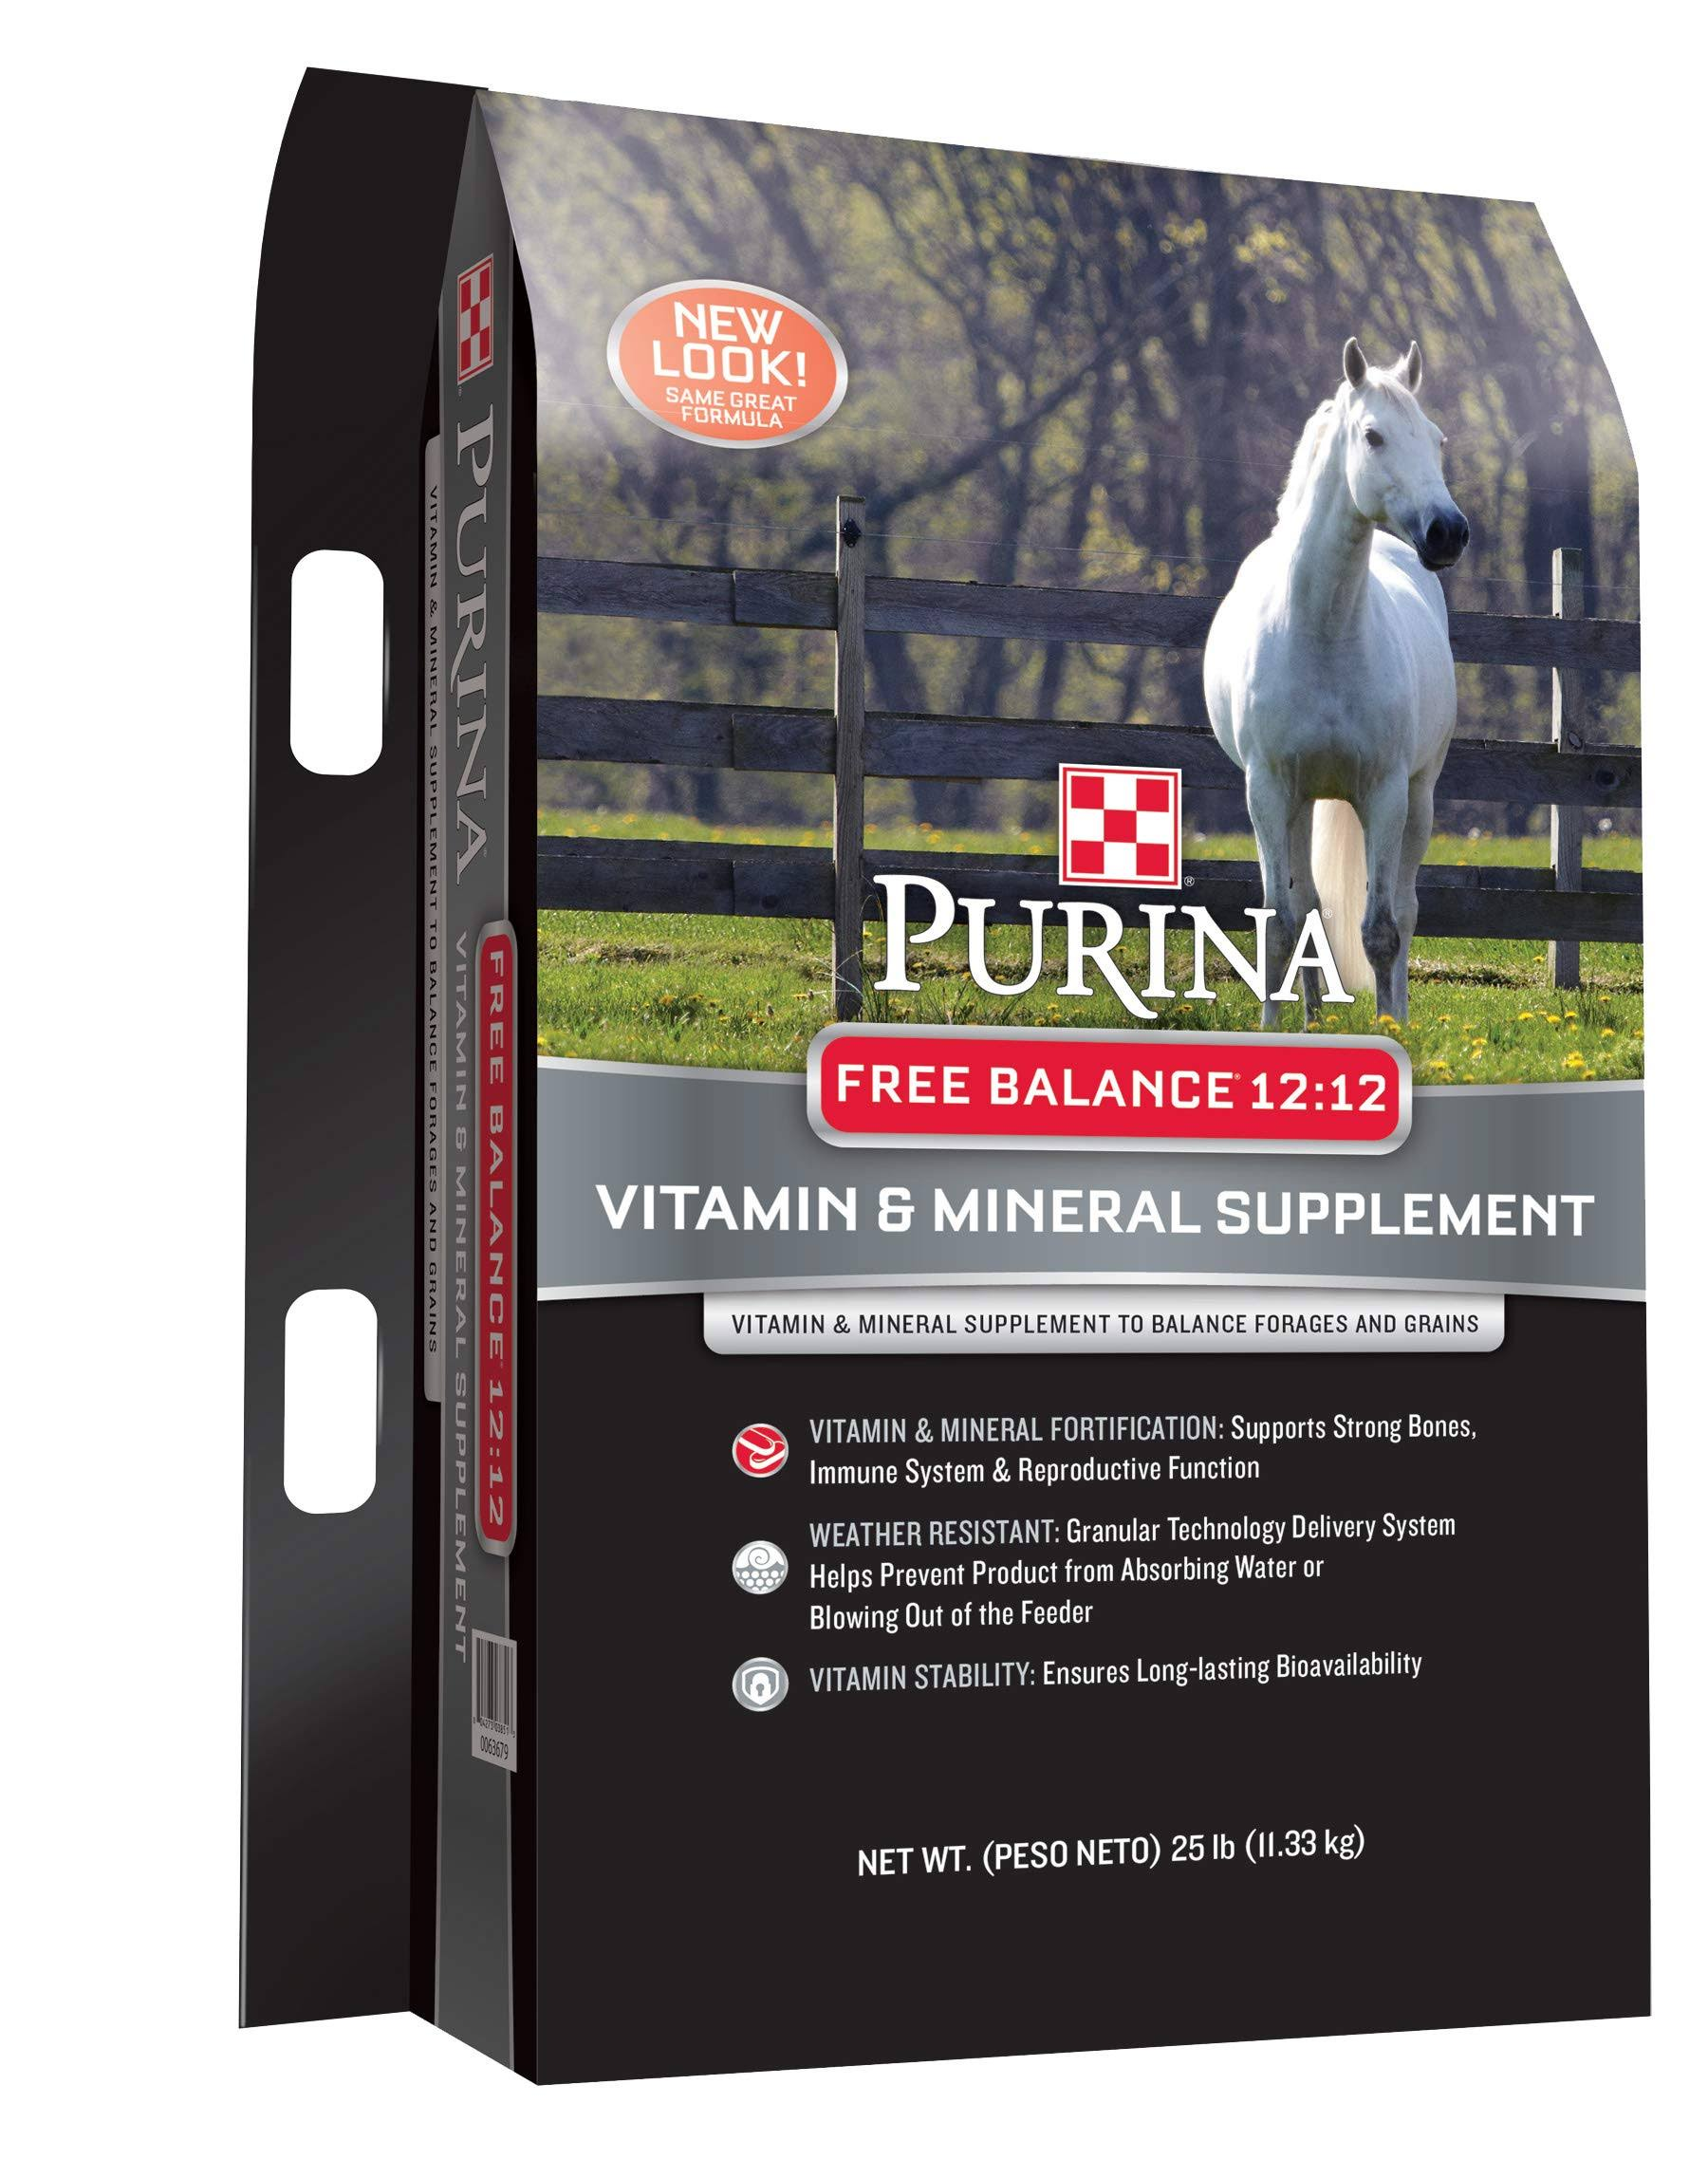 Purina Free Balance 12:12 Horse Supplement, 25 lb Bag